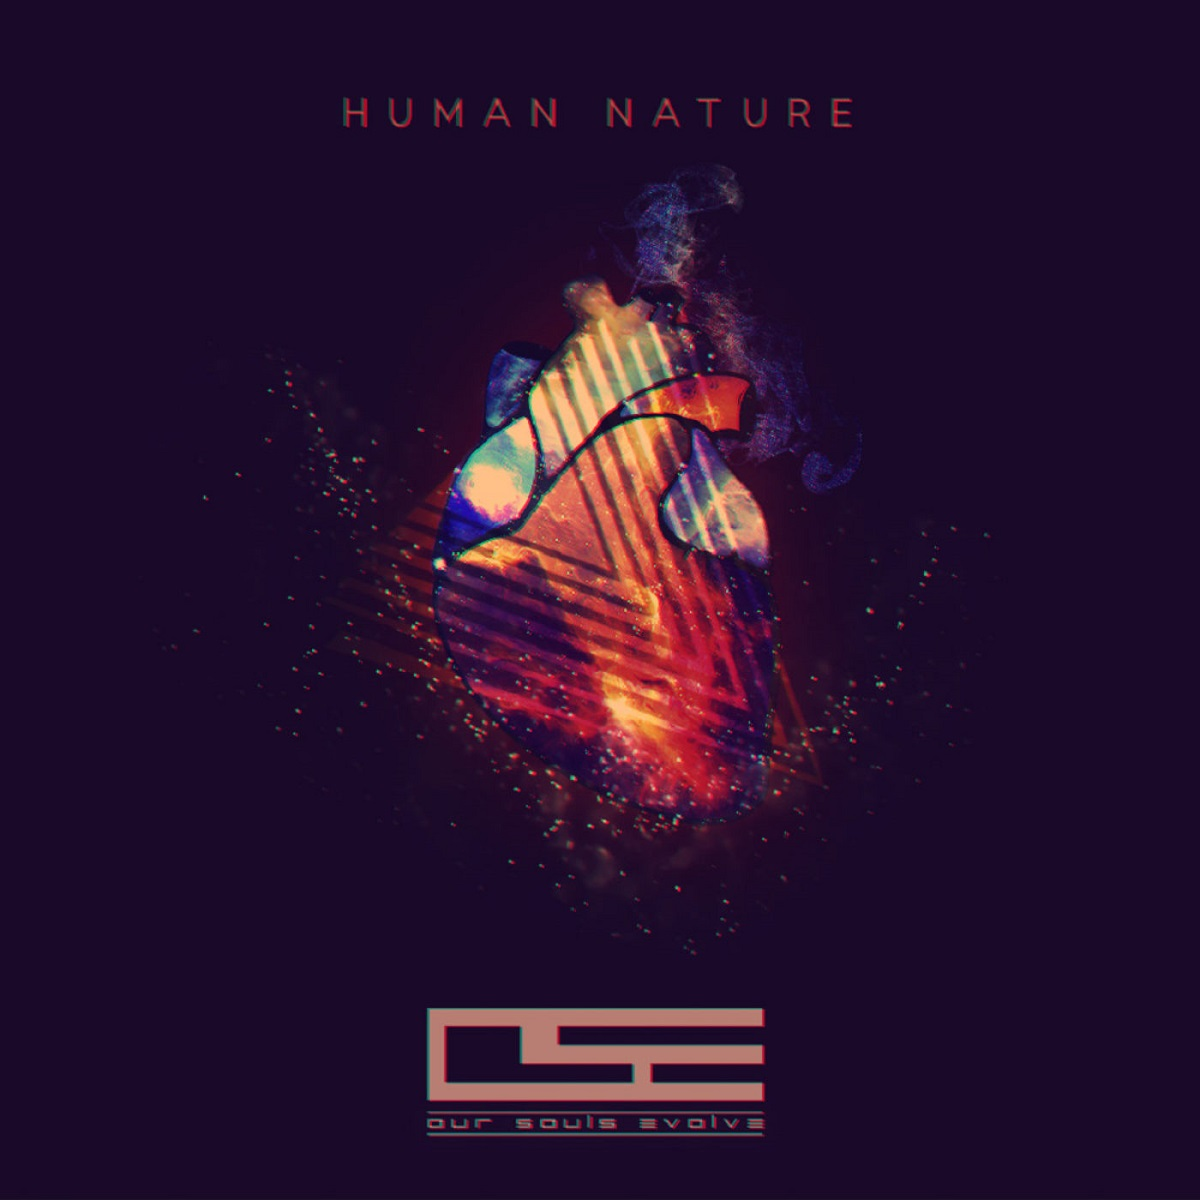 Our Souls Evolve - Human Nature